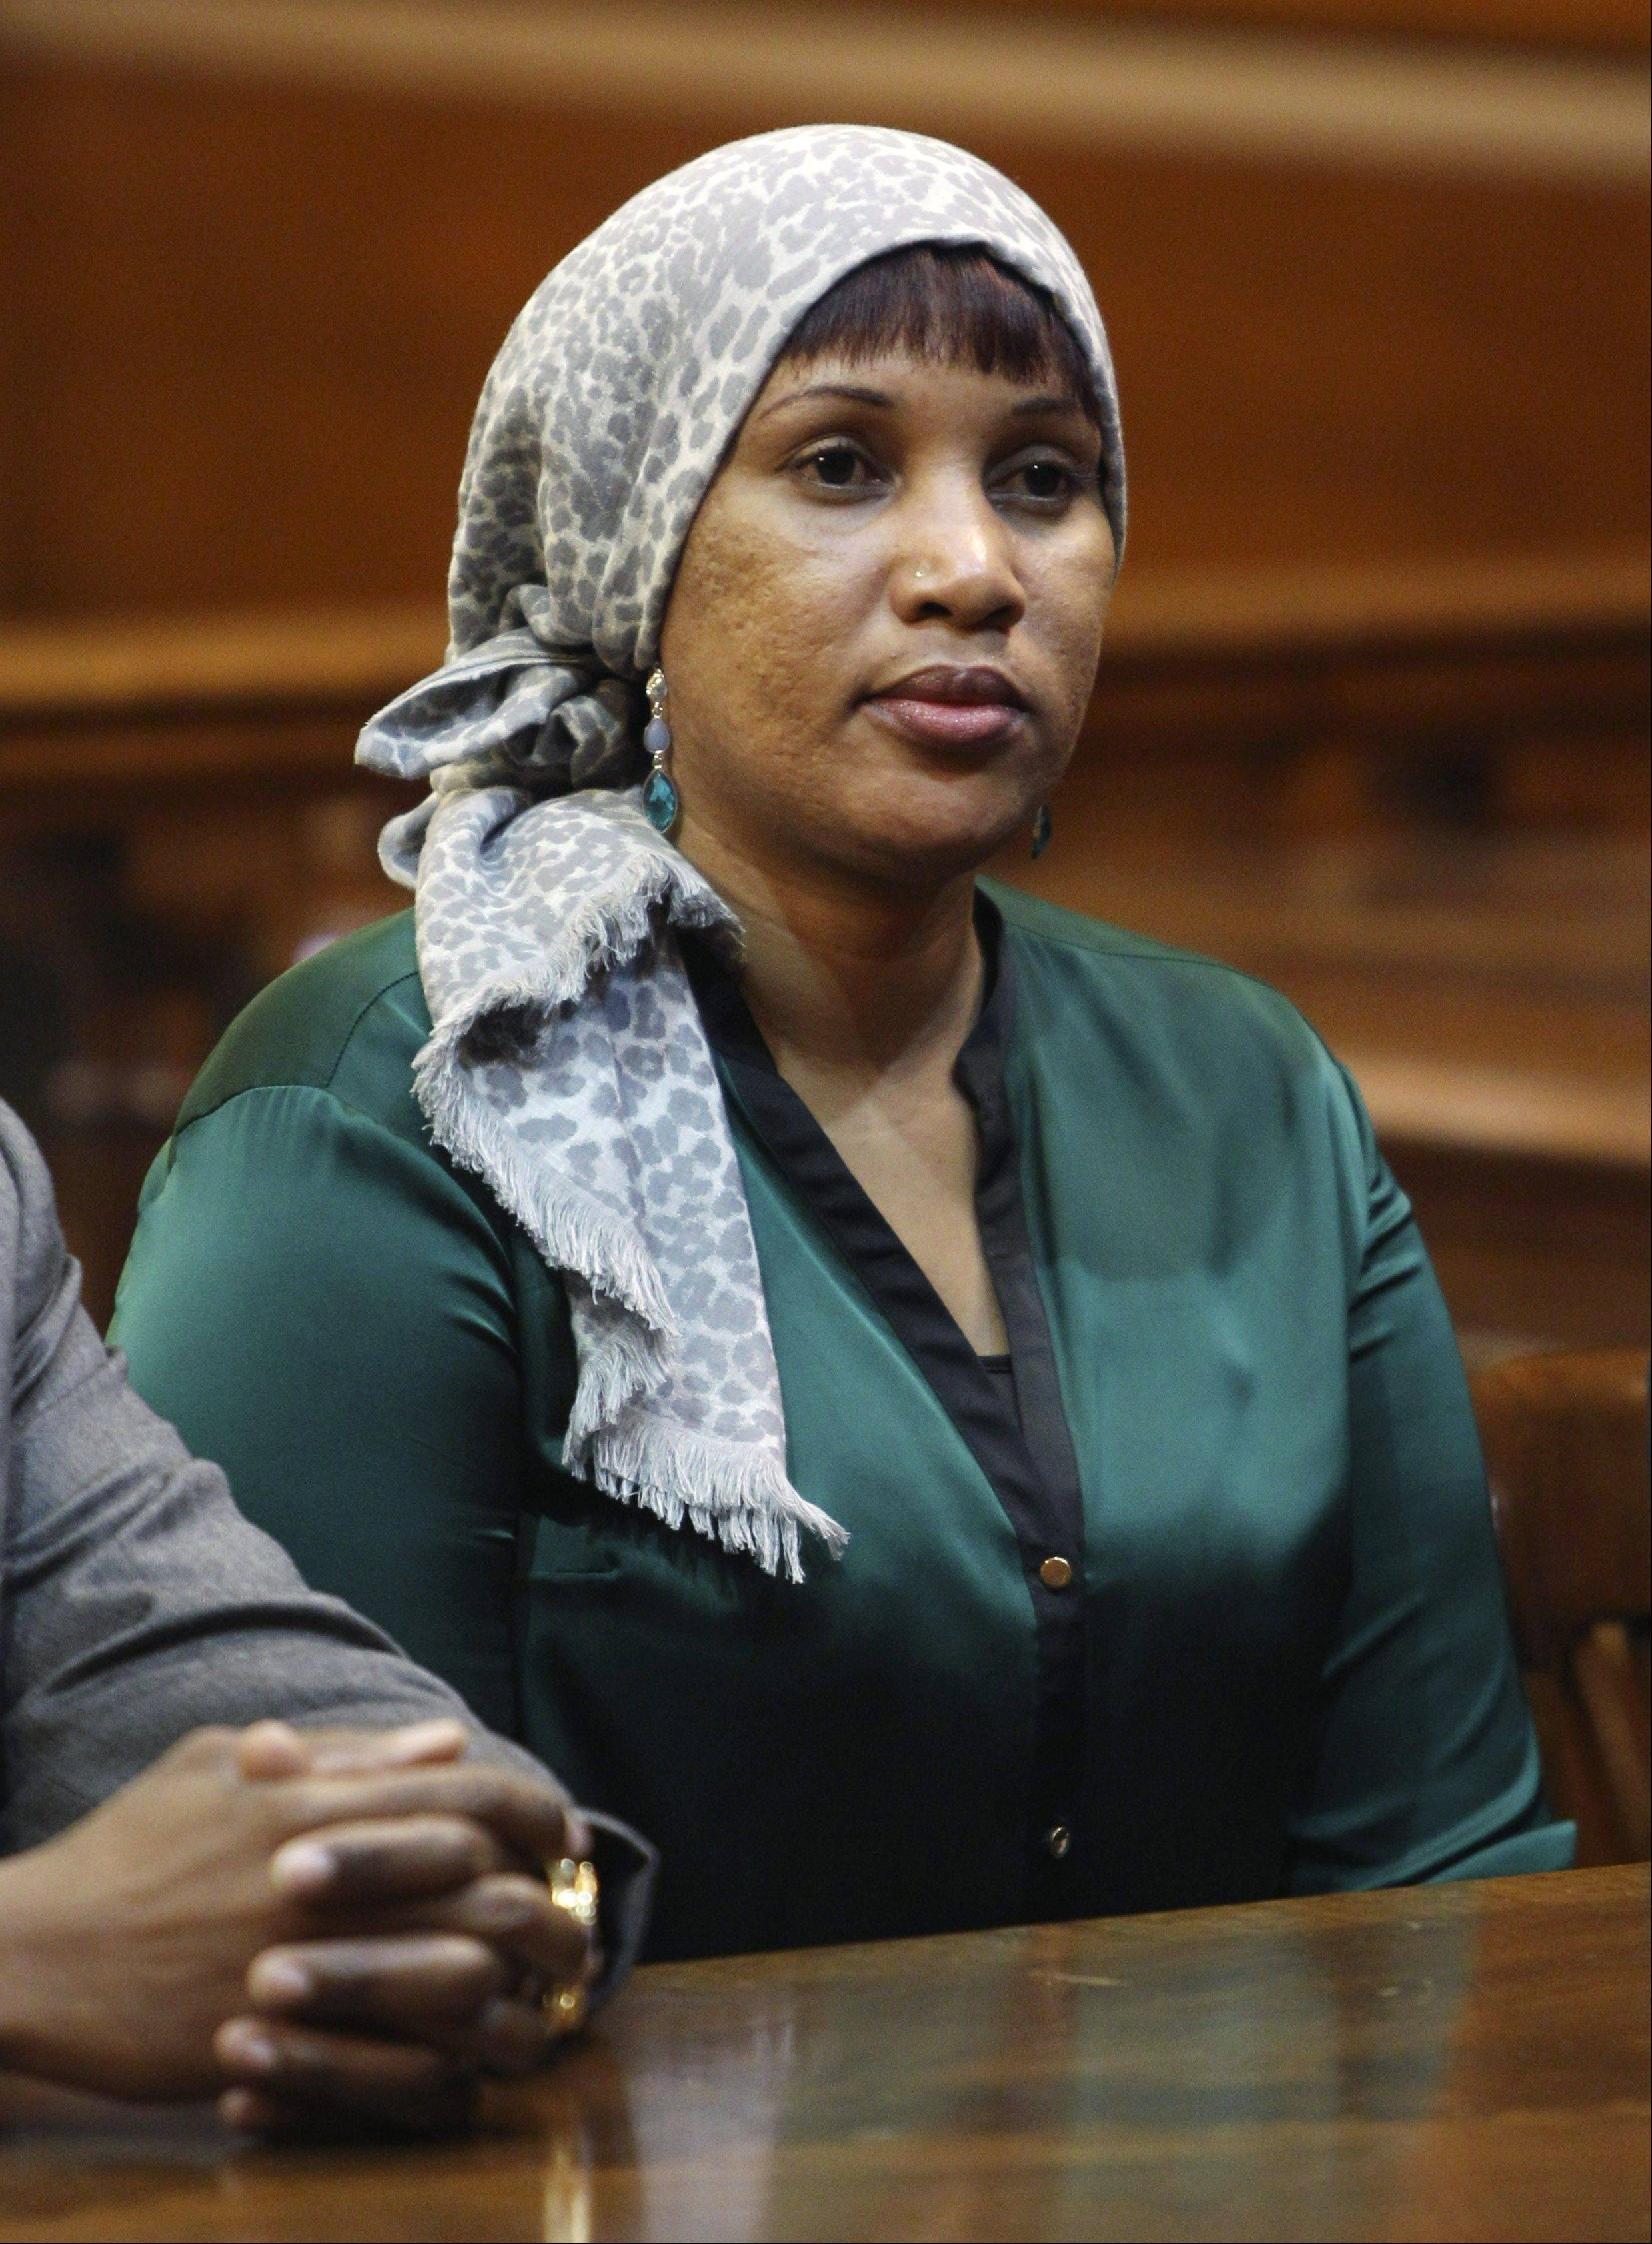 Nafissatou Diallo, a hotel housekeeper who alleged she was sexual assaulted by former International Monetary Fund leader Dominique Strauss-Kahn, appears in court in New York Monday.